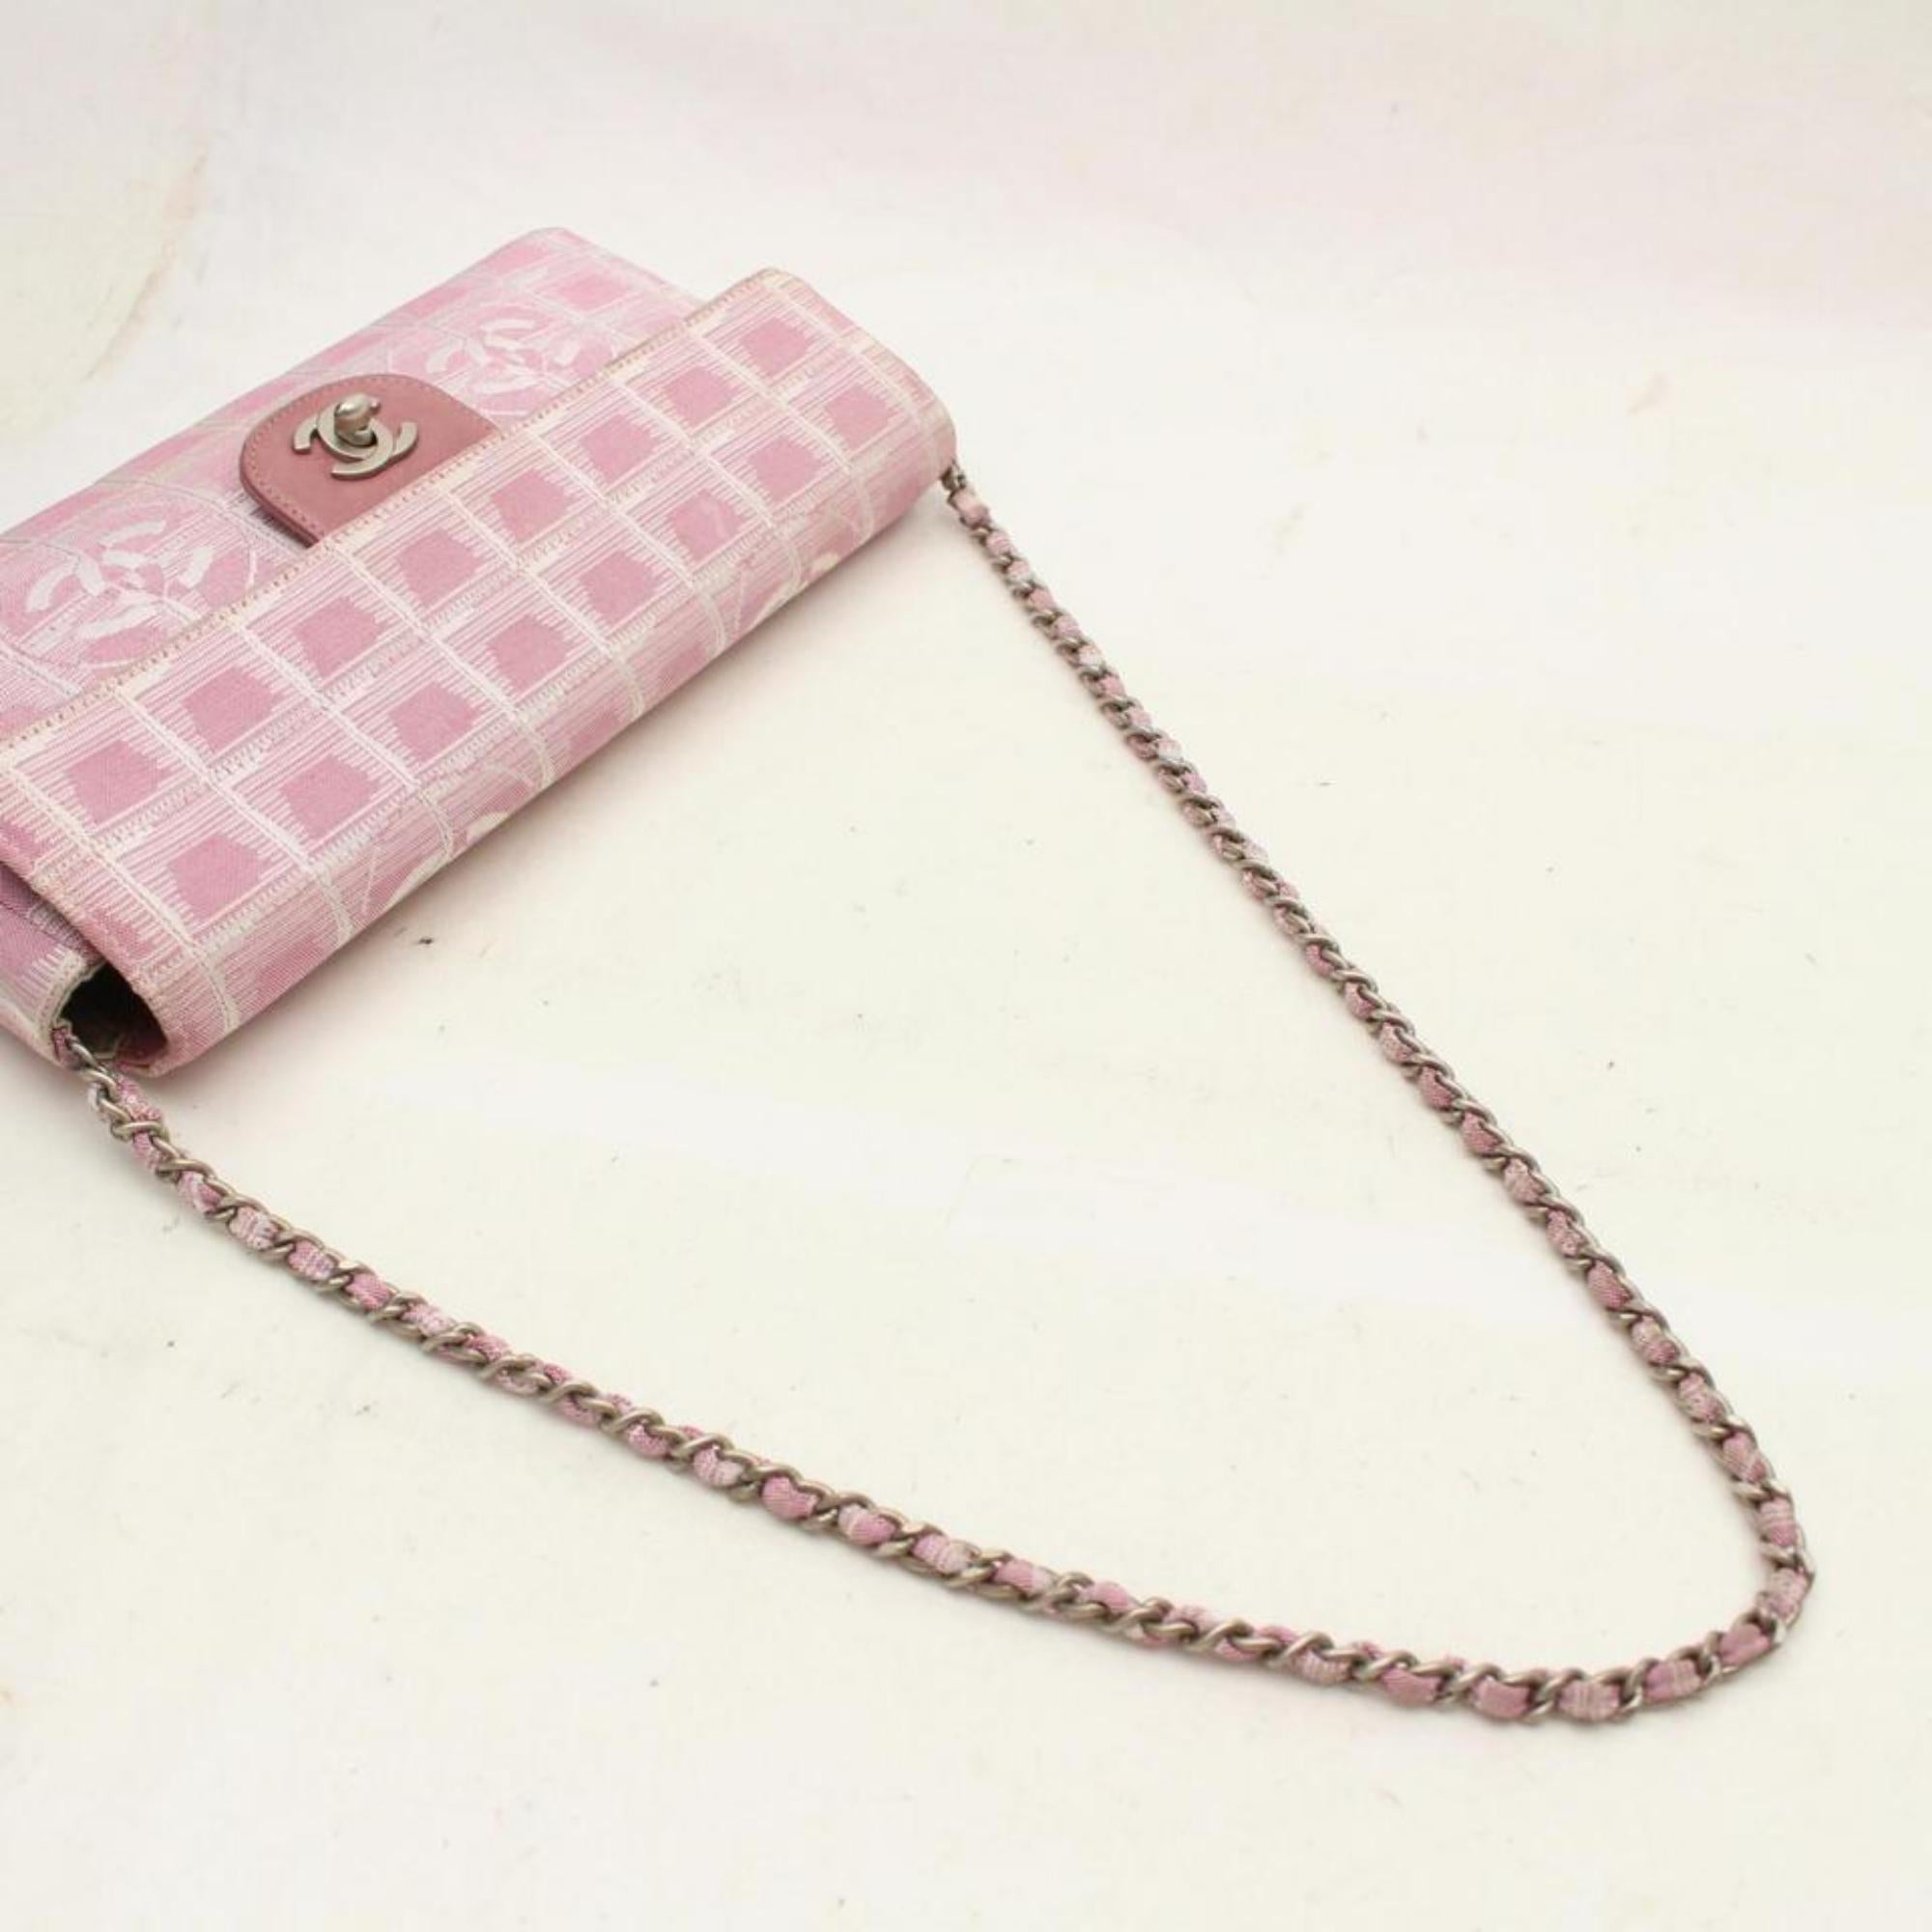 493f05a13b10 Chanel East West Chocolate Bar Chain Flap 869394 Pink Canvas Shoulder Bag  For Sale at 1stdibs